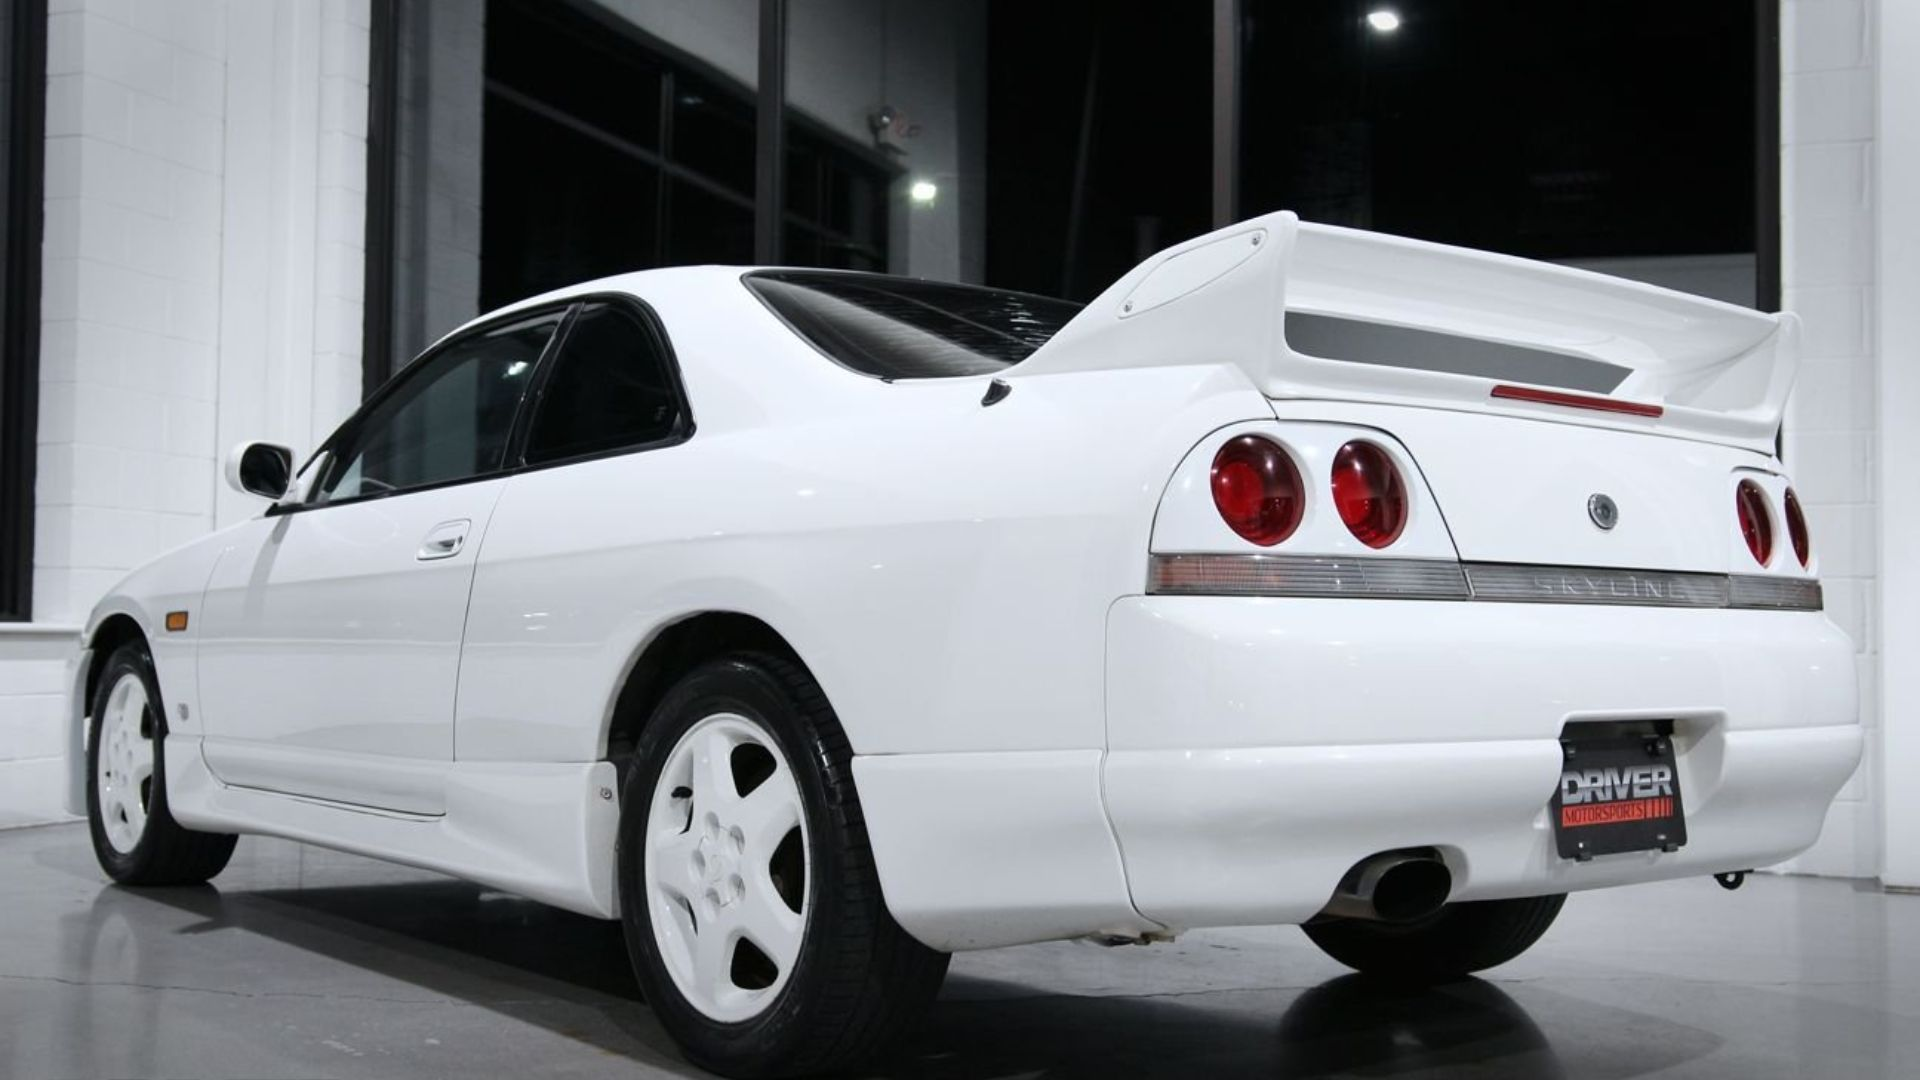 Enjoy Affordable Performance With A 1993 Nissan R33 Skyline GTS-T